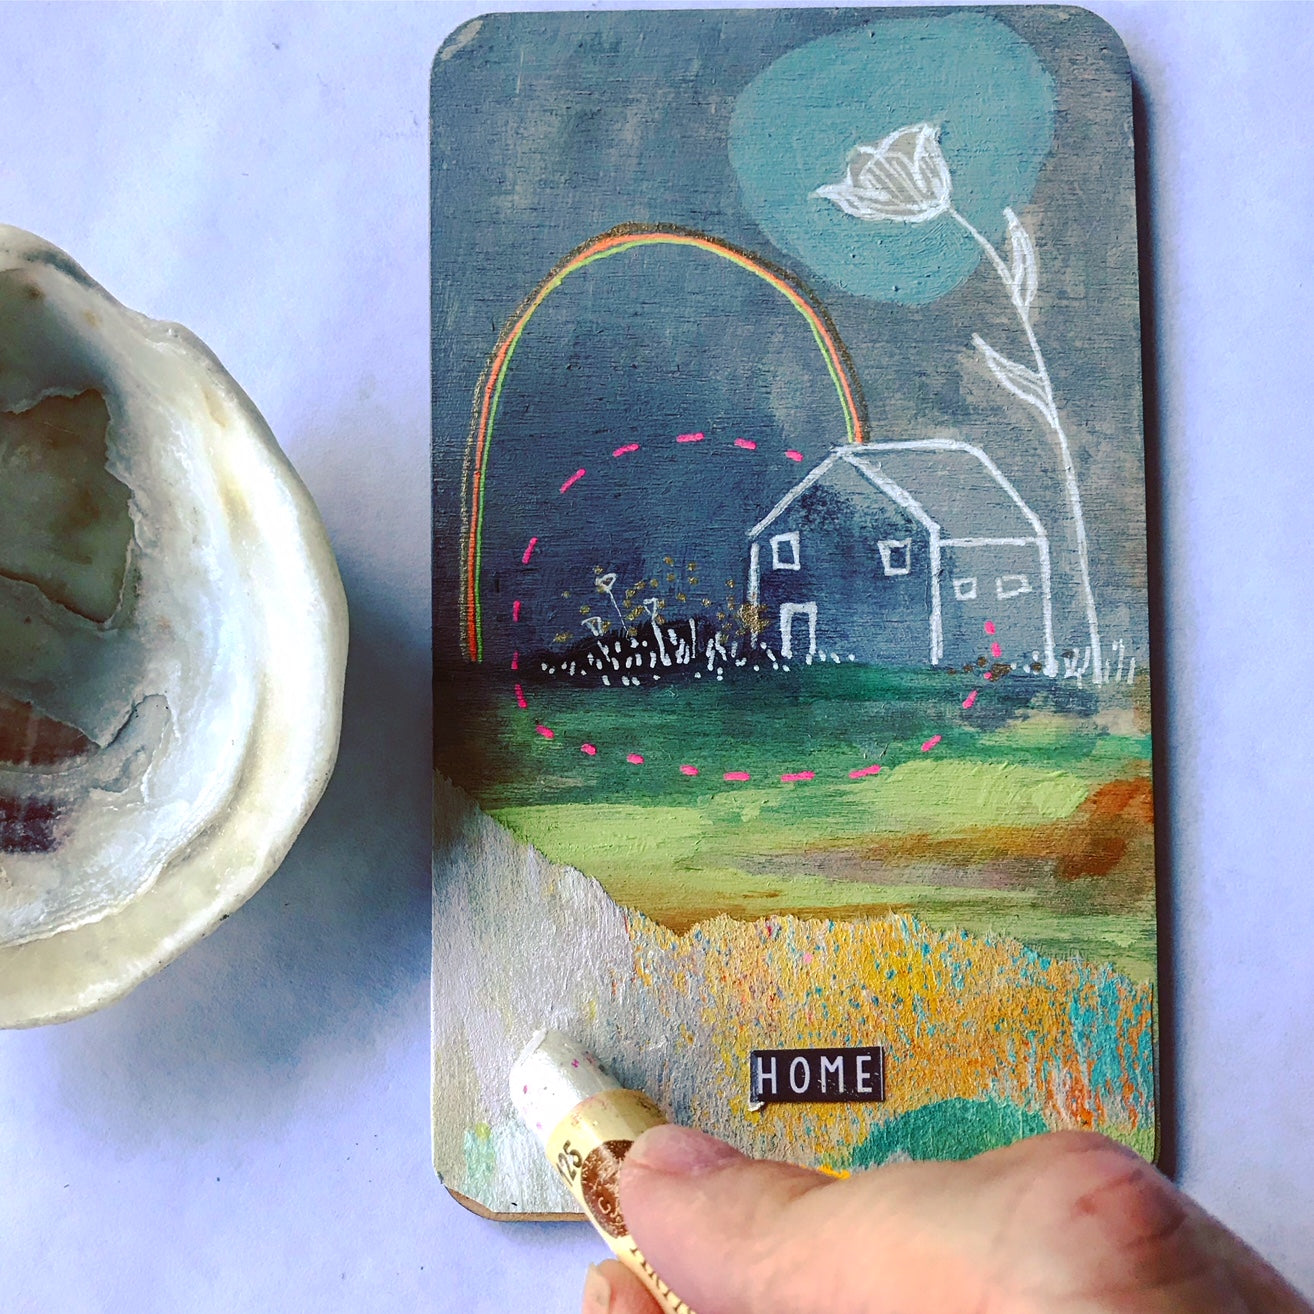 Home - Hand Painted Wooden Oracle Card